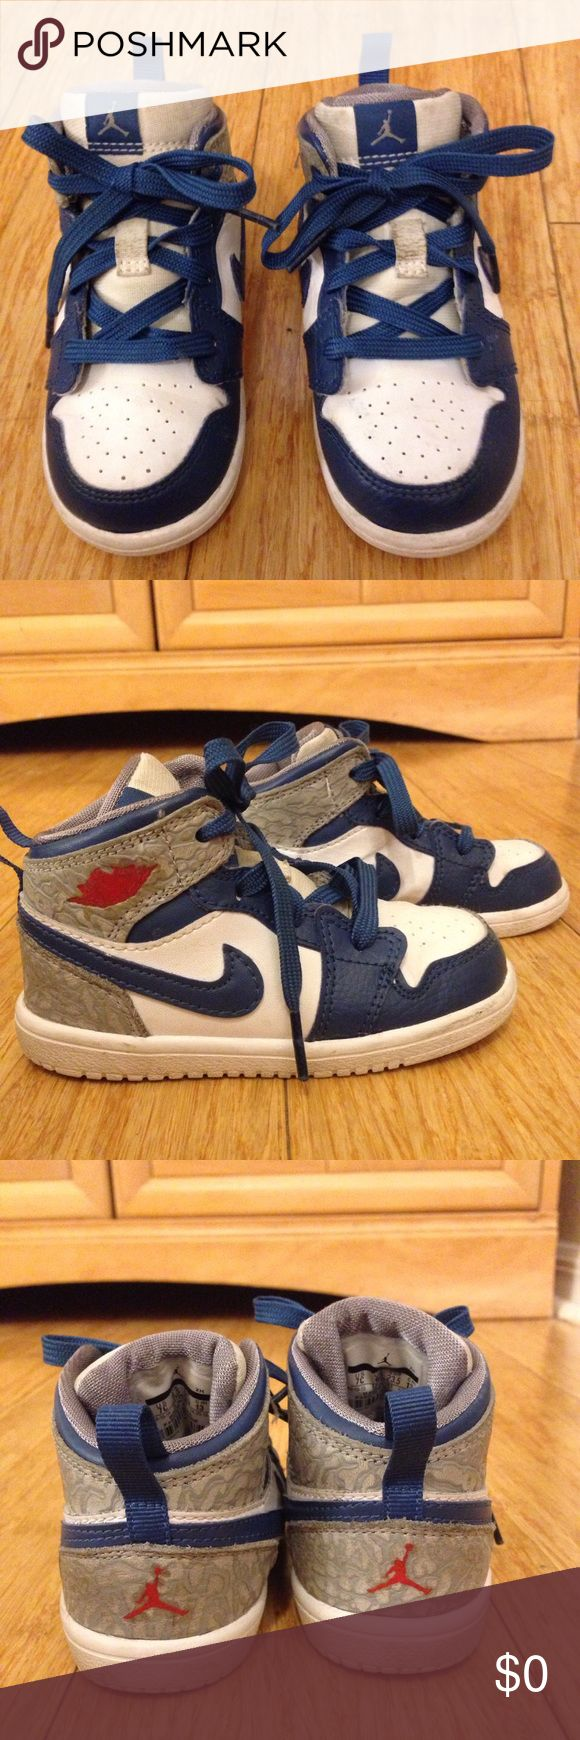 🌴NEW LISTING🌴 Jordan Sneakers Blue and white.  Show signs of wear. Size 12. (5/6) Jordan Shoes Sneakers